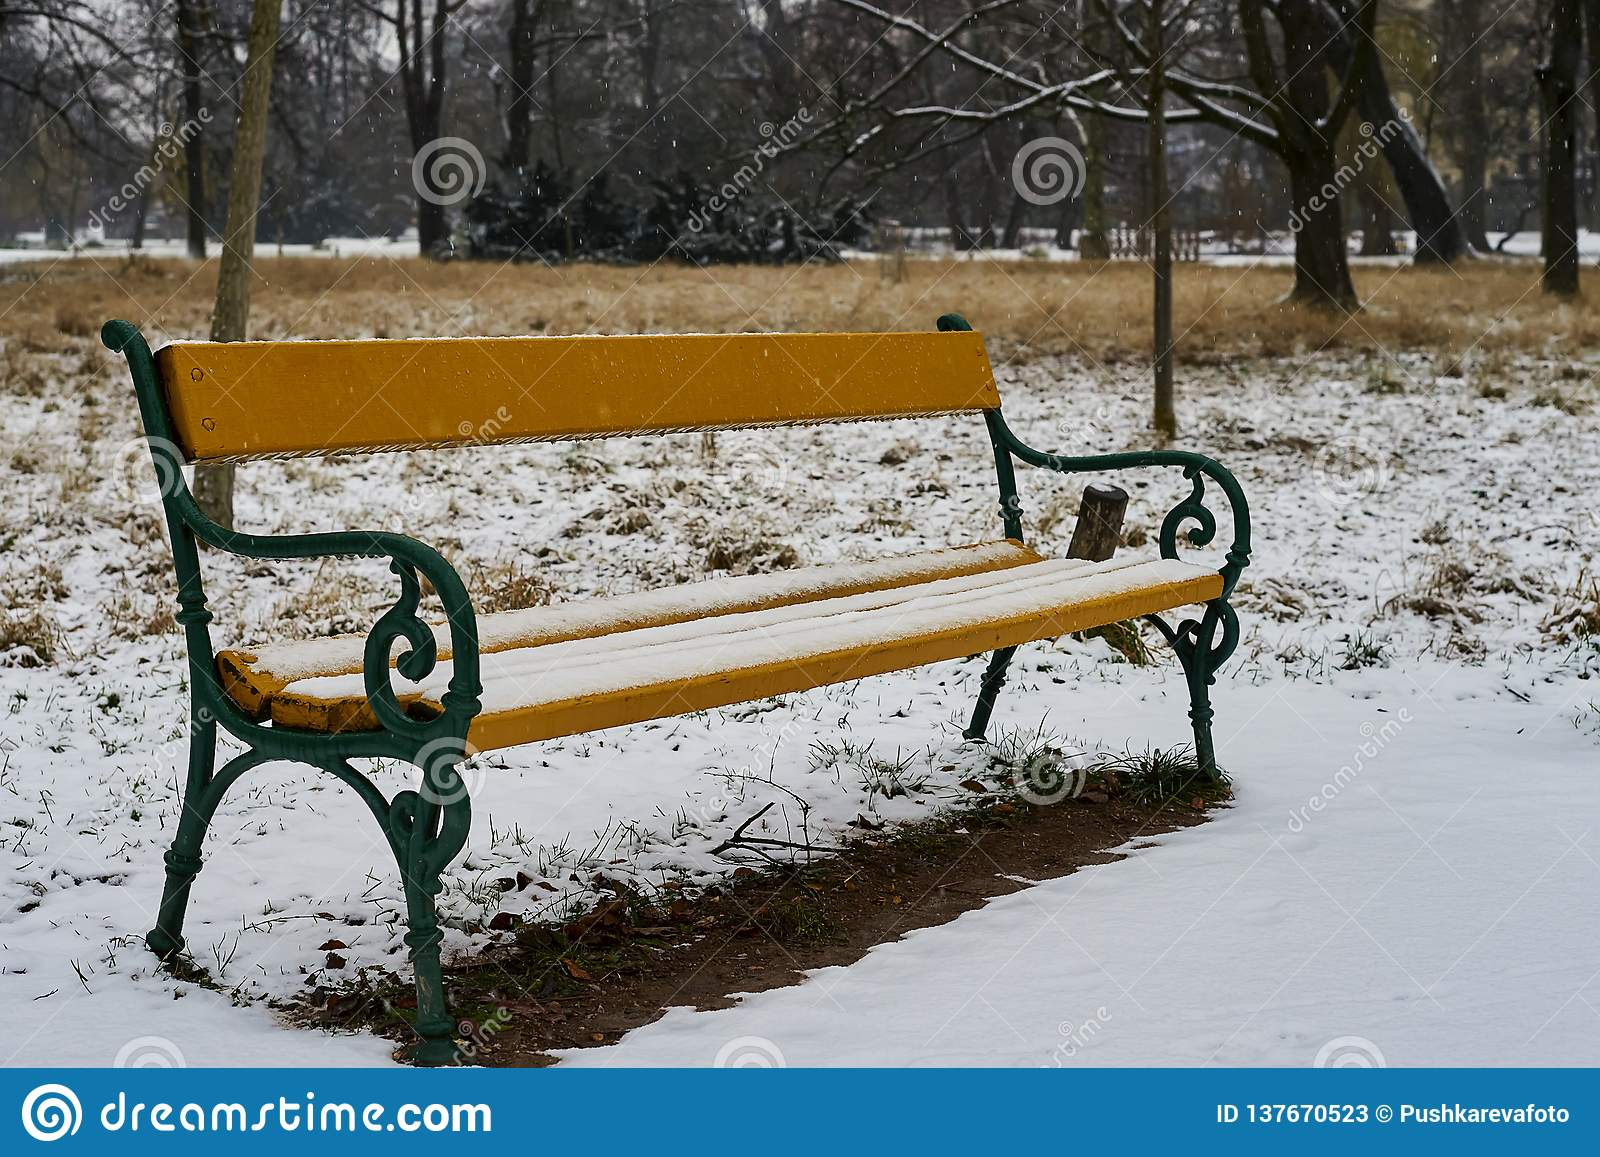 Marvelous Snow Covered Wooden Bench In Early Winter In City Park In Caraccident5 Cool Chair Designs And Ideas Caraccident5Info